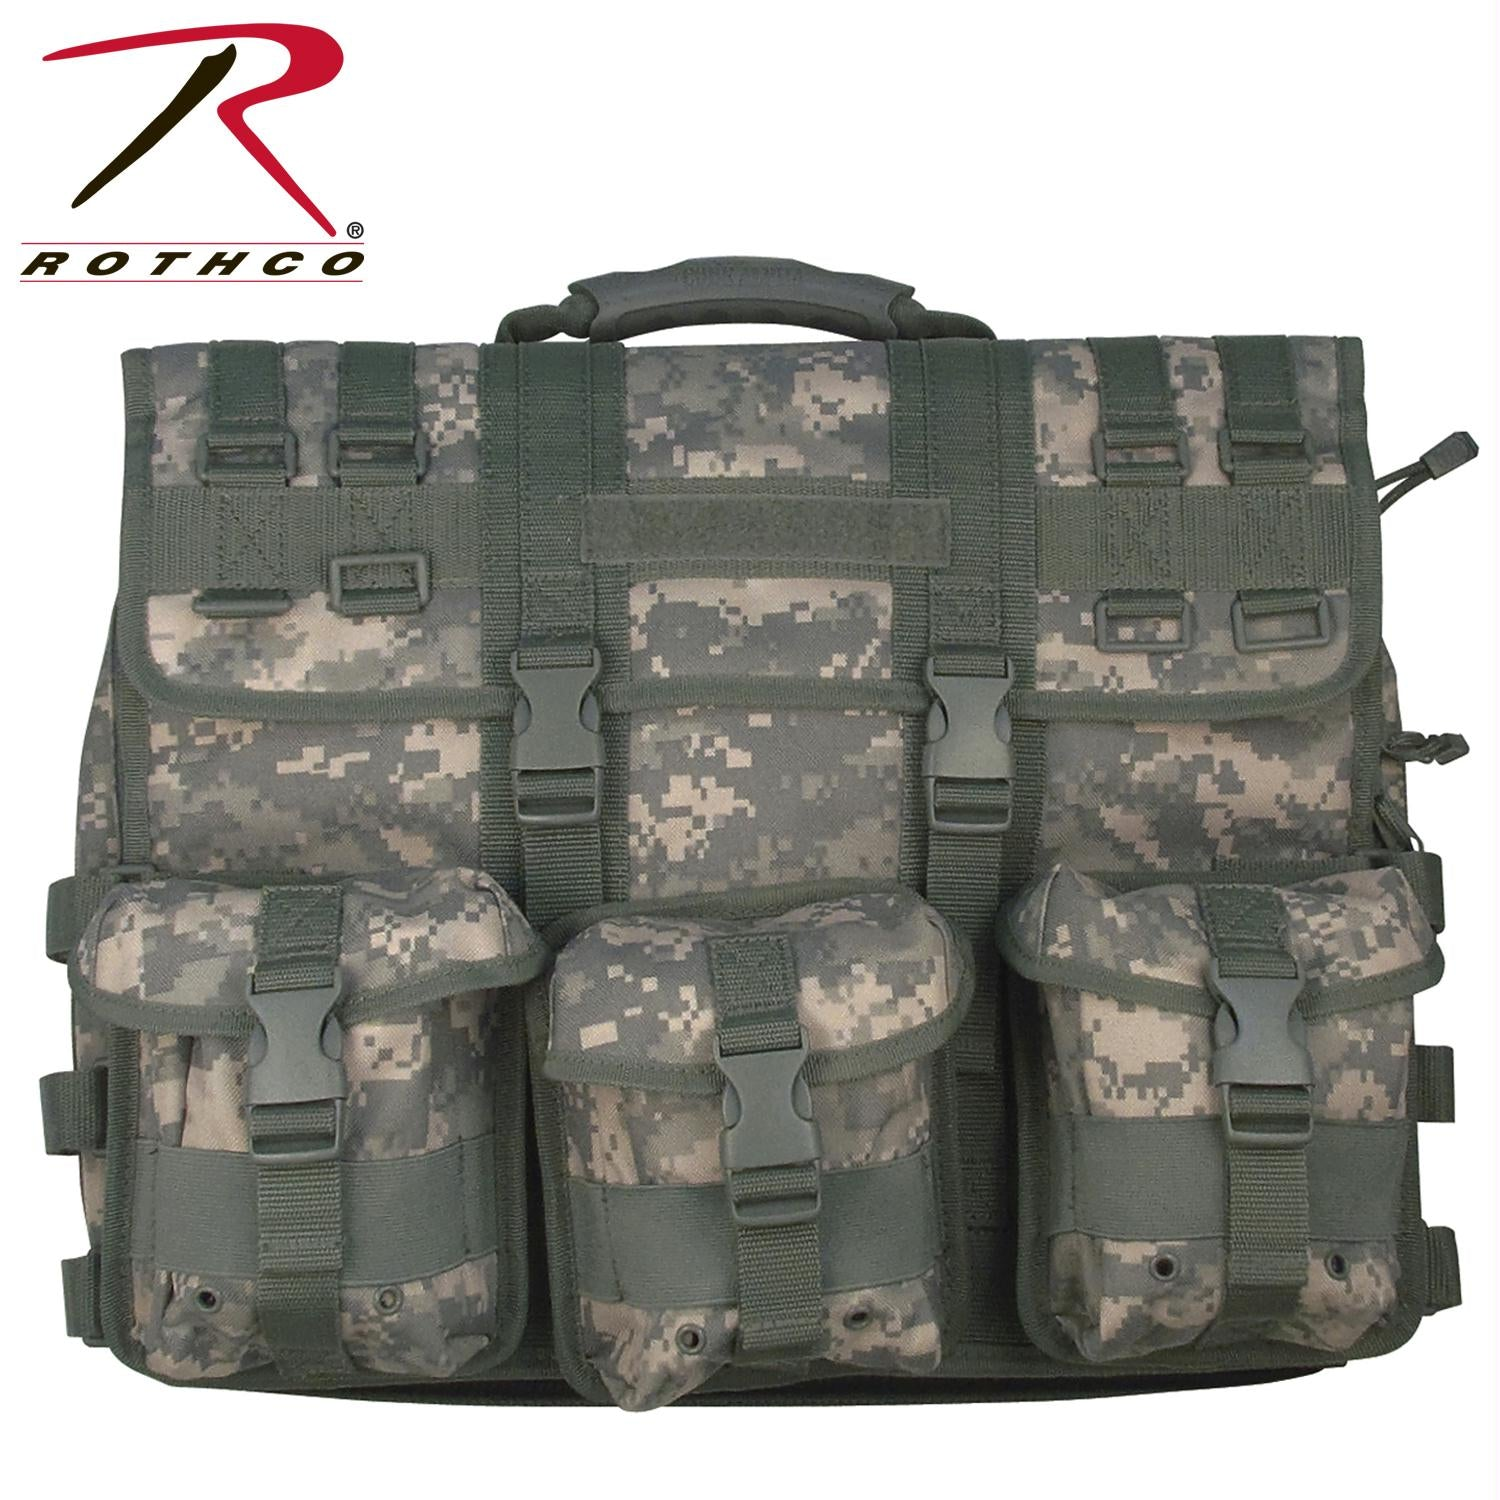 Rothco MOLLE Tactical Laptop Briefcase - ACU Digital Camo